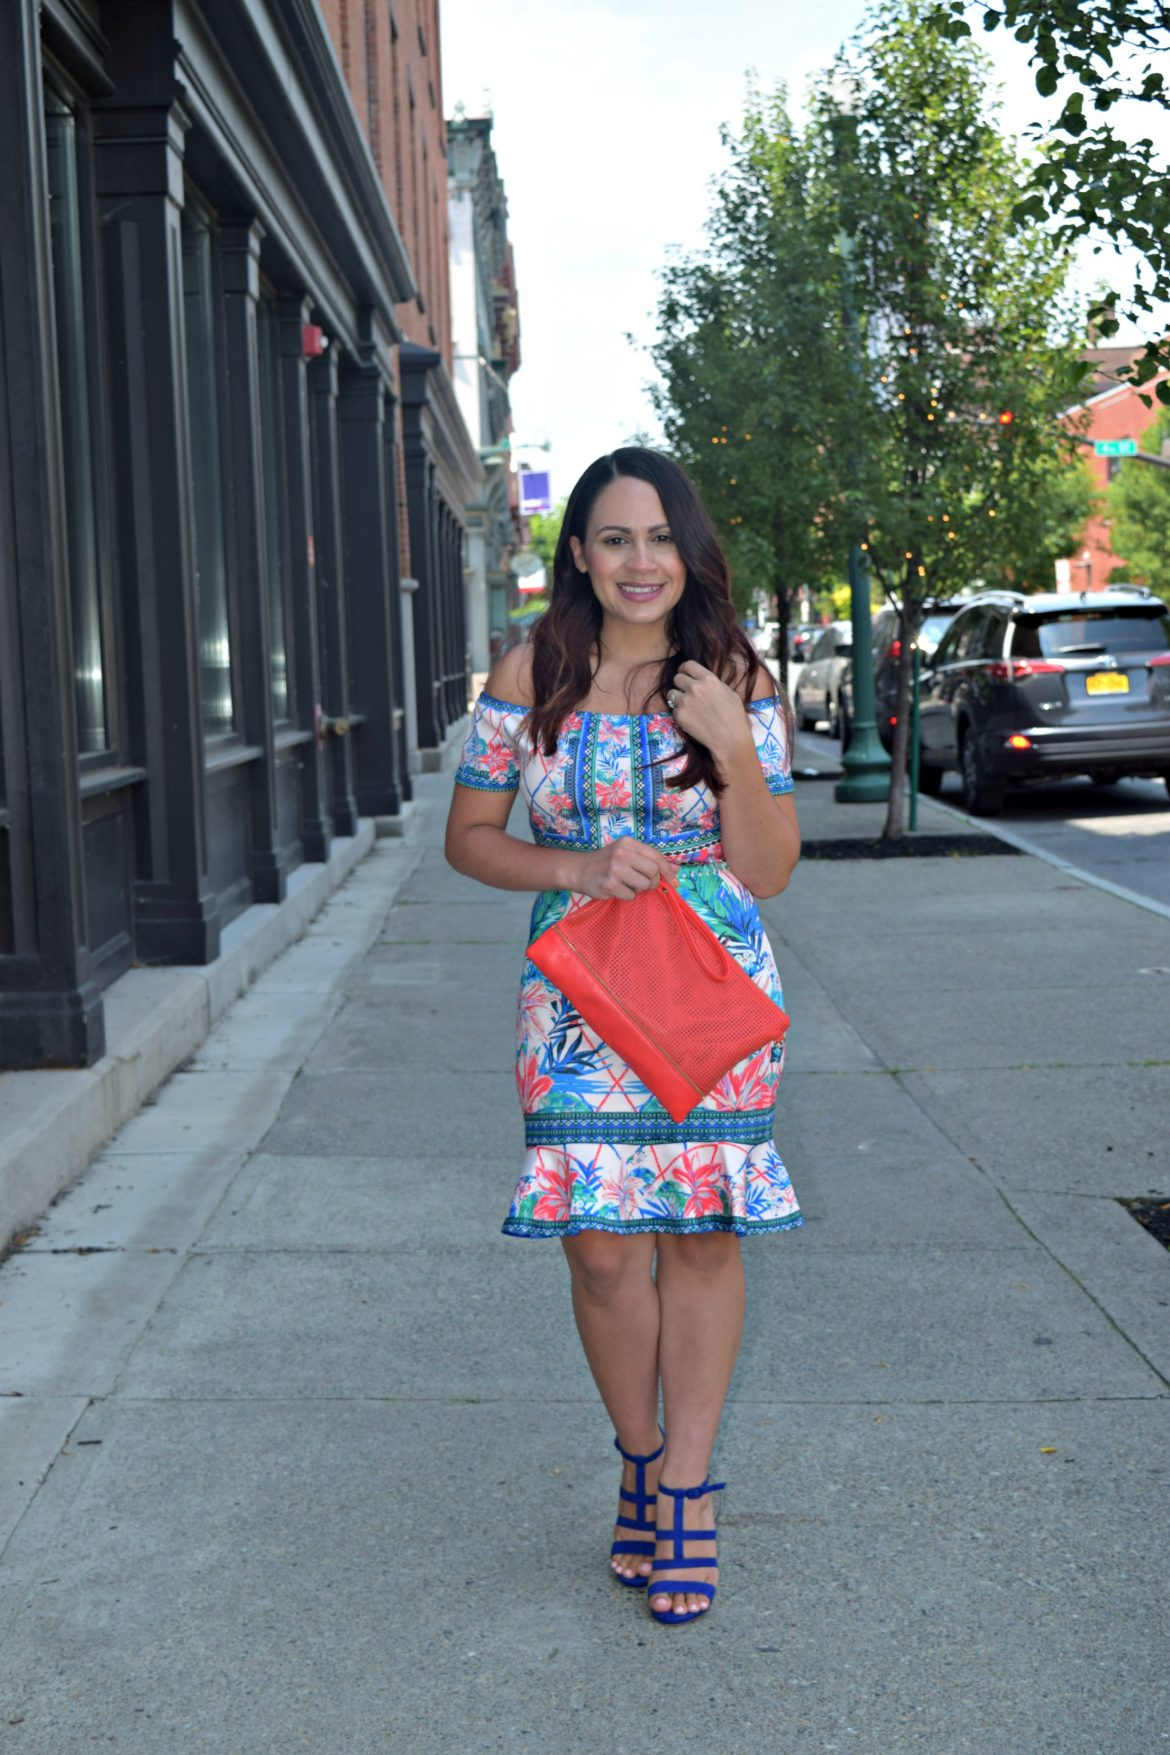 Melissa Mom with Style wearing a bright bold summer outfit